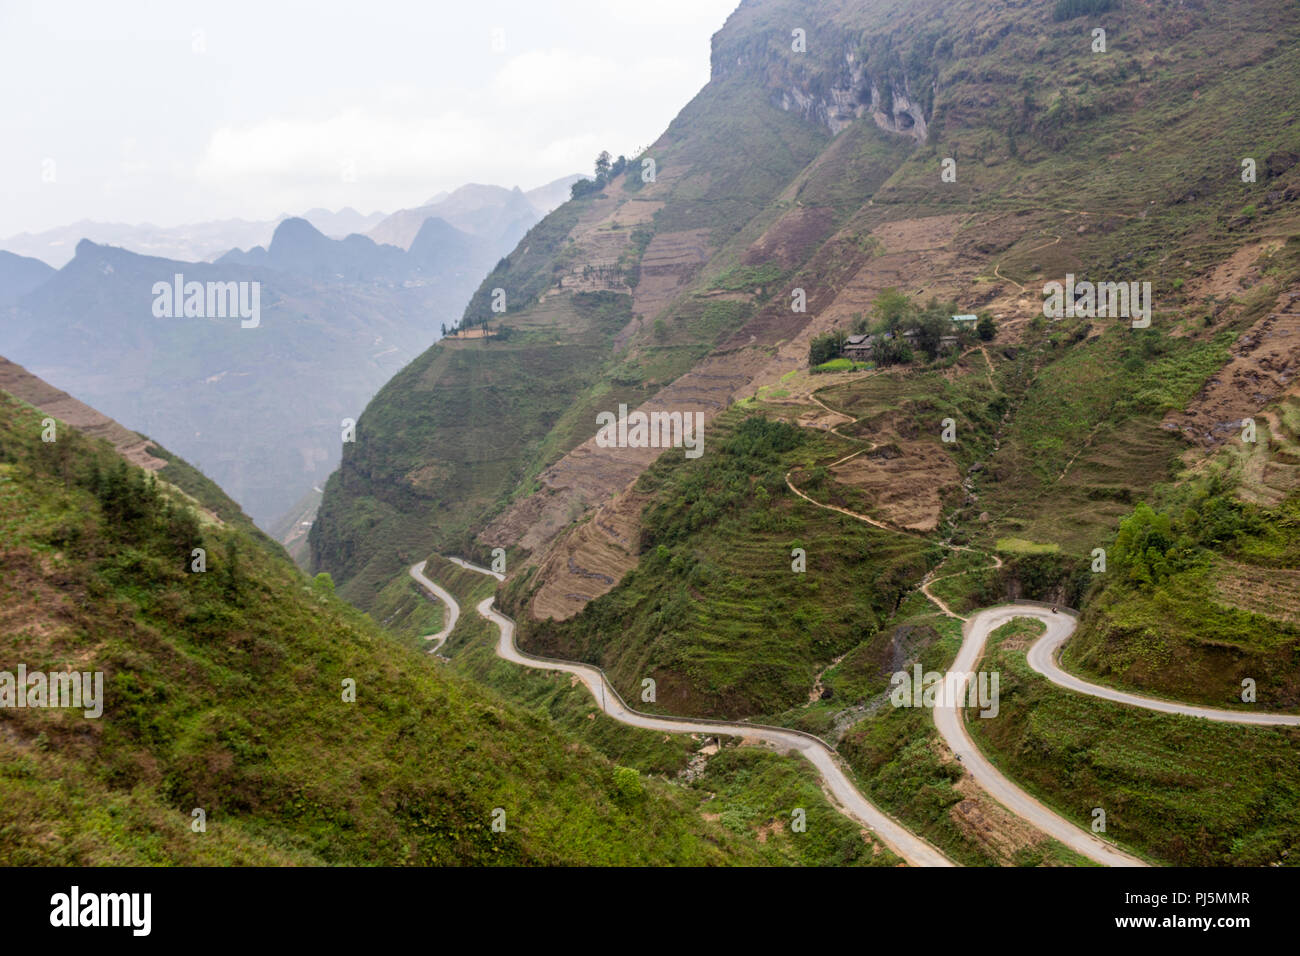 Ha Giang, Vietnam - March 18, 2018: Stunning view of terraced land and high mountains at Ma Pi Leng pass, one of the most dangerous roads of Vietnam Stock Photo